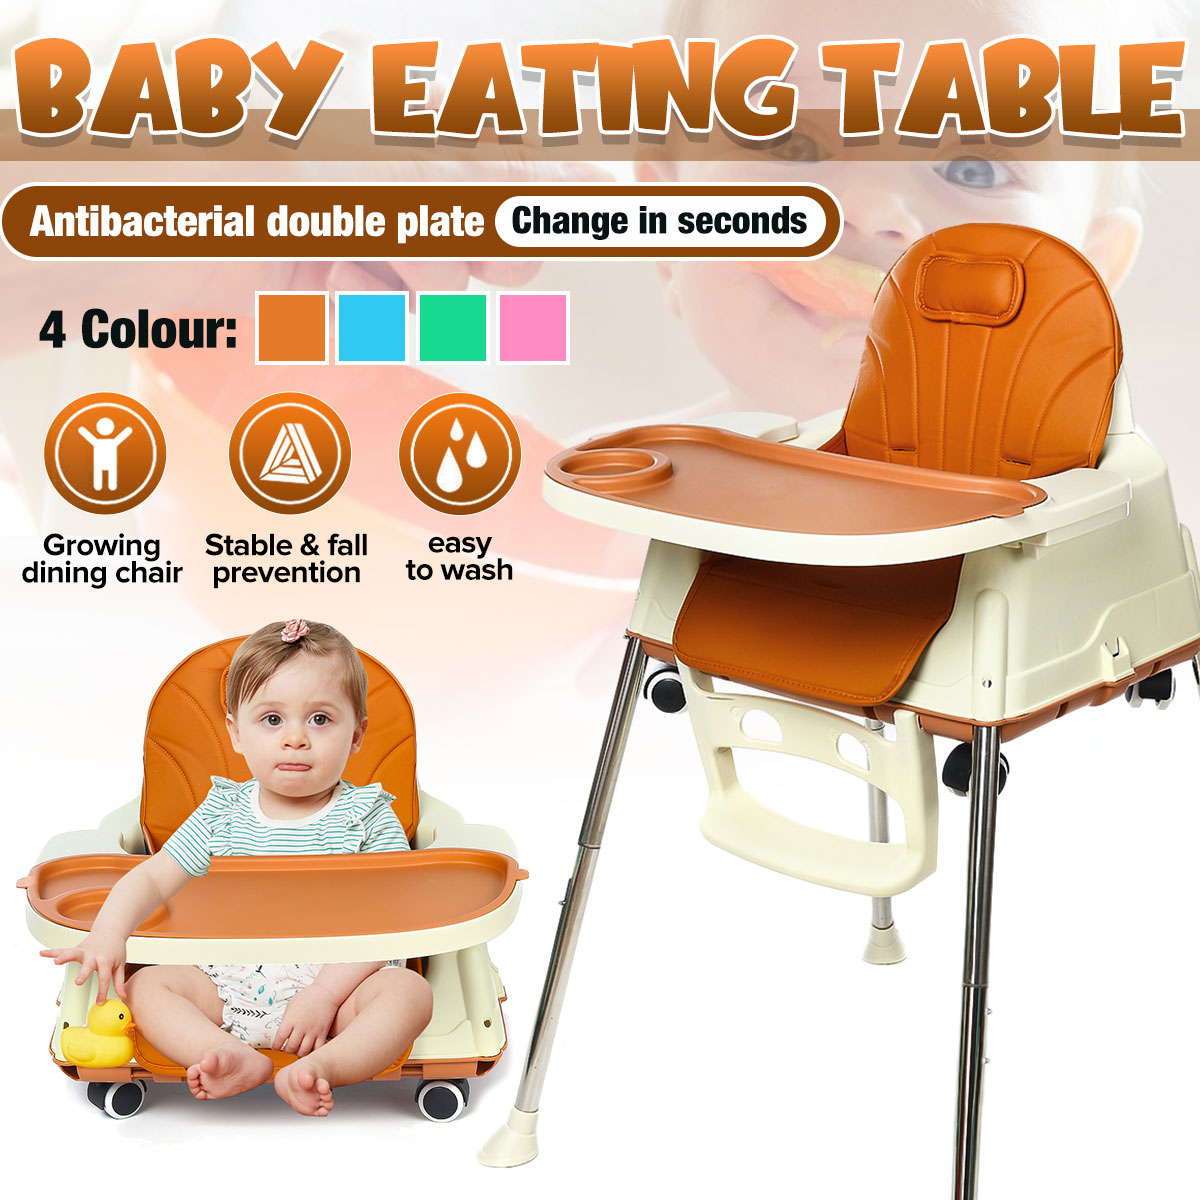 Multifunction Children's Dining Chair Portable Baby Seat Baby Dinner Table Adjustable Folding Chairs With Wheels For Children